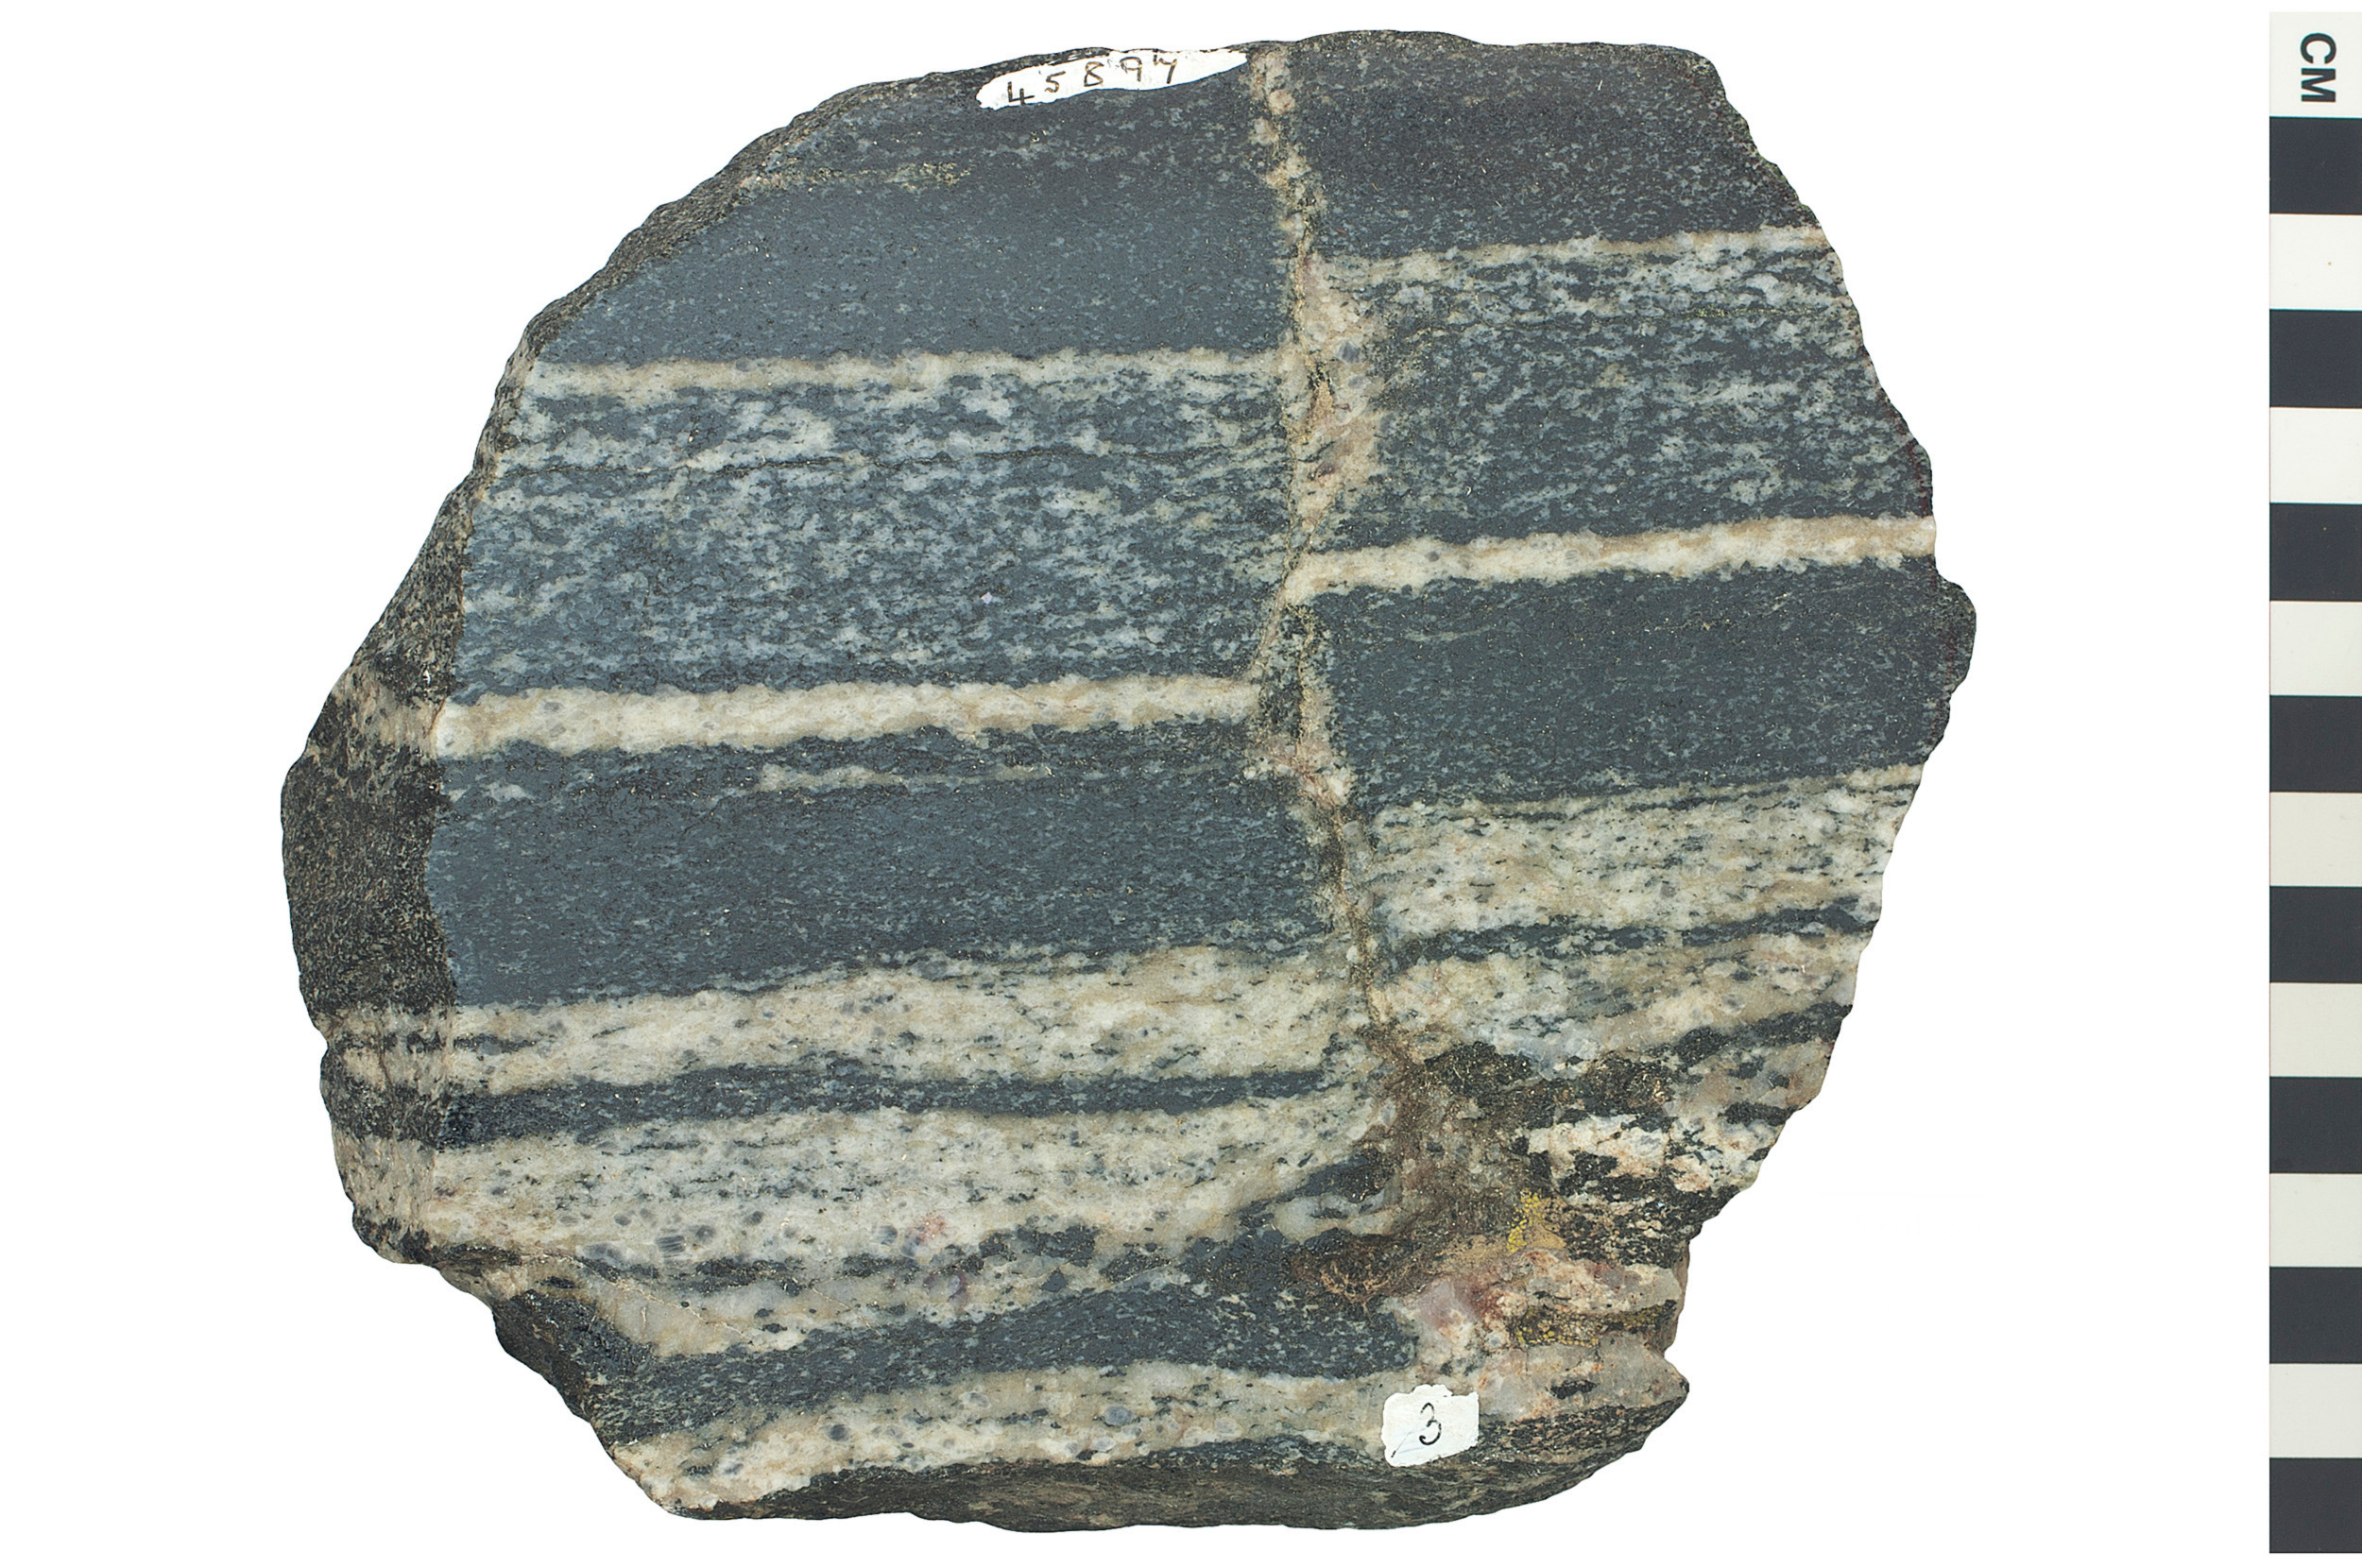 metamorphic rock Interesting facts did you know that most of the earth's crust is made of metamorphic rock well it's true even though the rock gets really, really hot and is under a whole heap of pressure it doesn't melt.